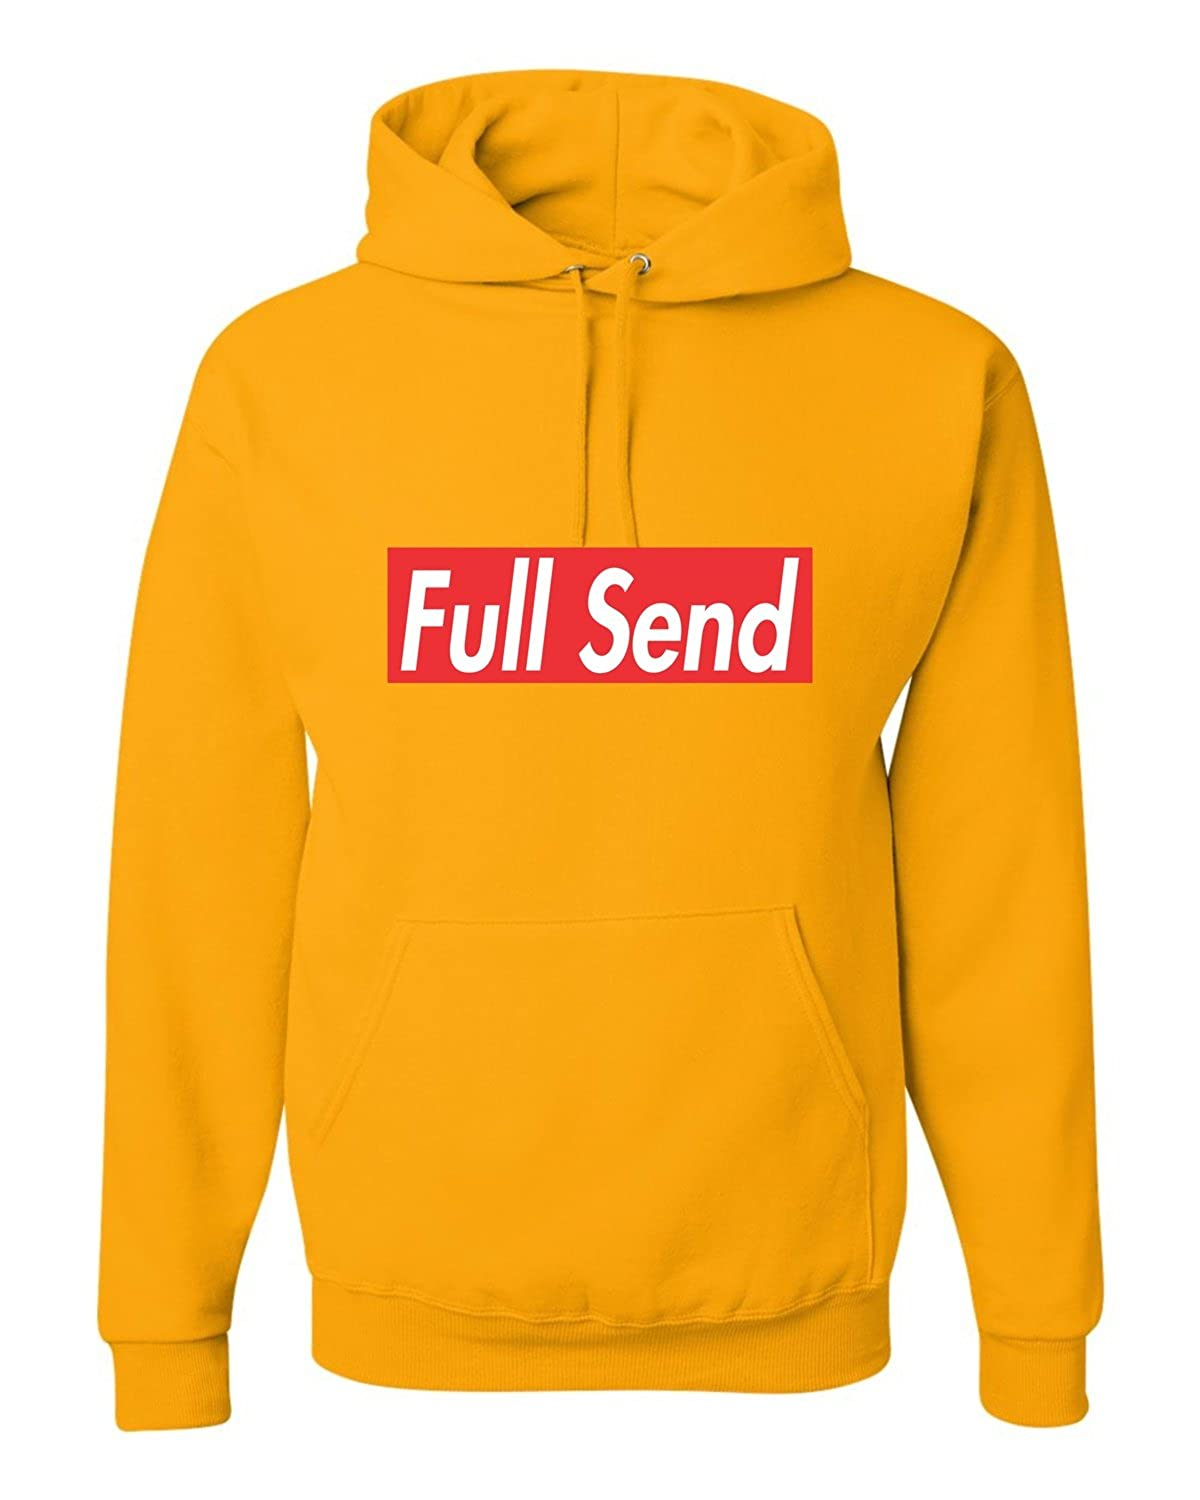 Go All Out Adult Full Send Sweatshirt Hoodie